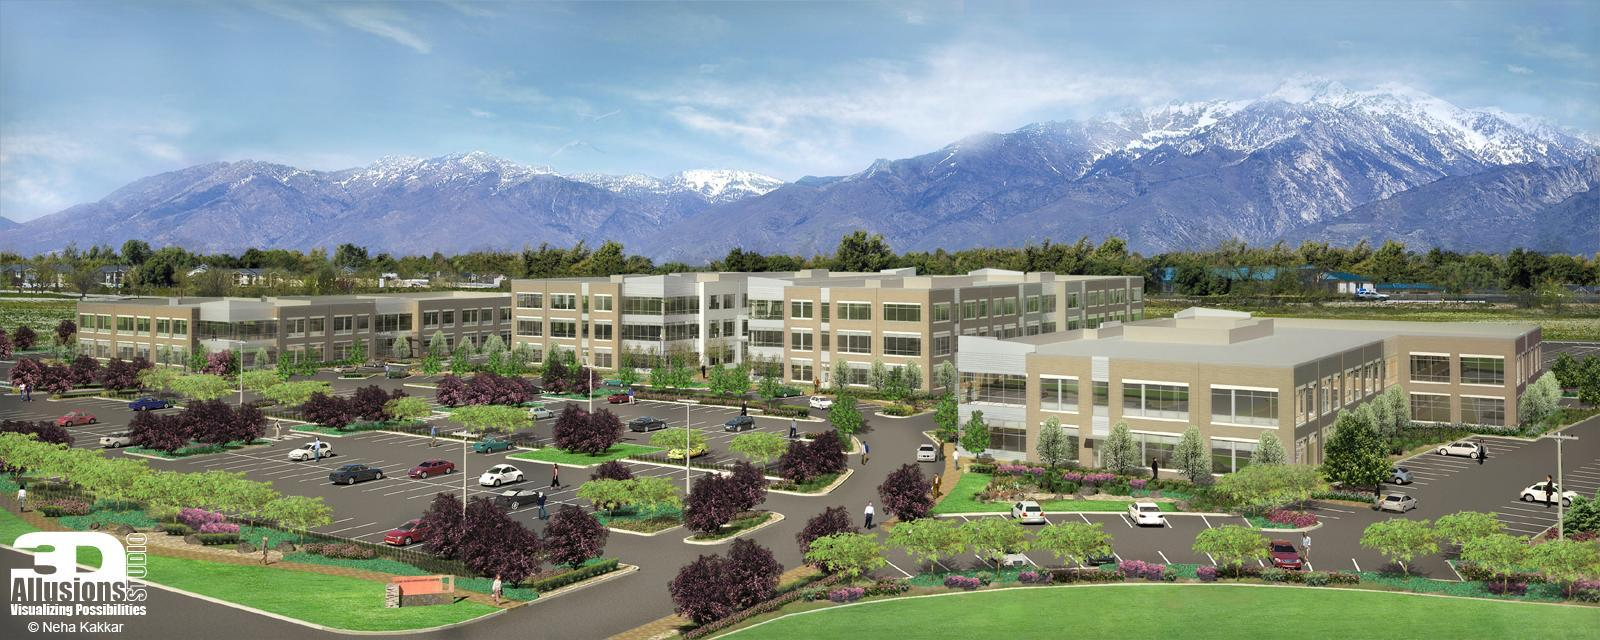 Lone Peak Overall Architectural Rendering